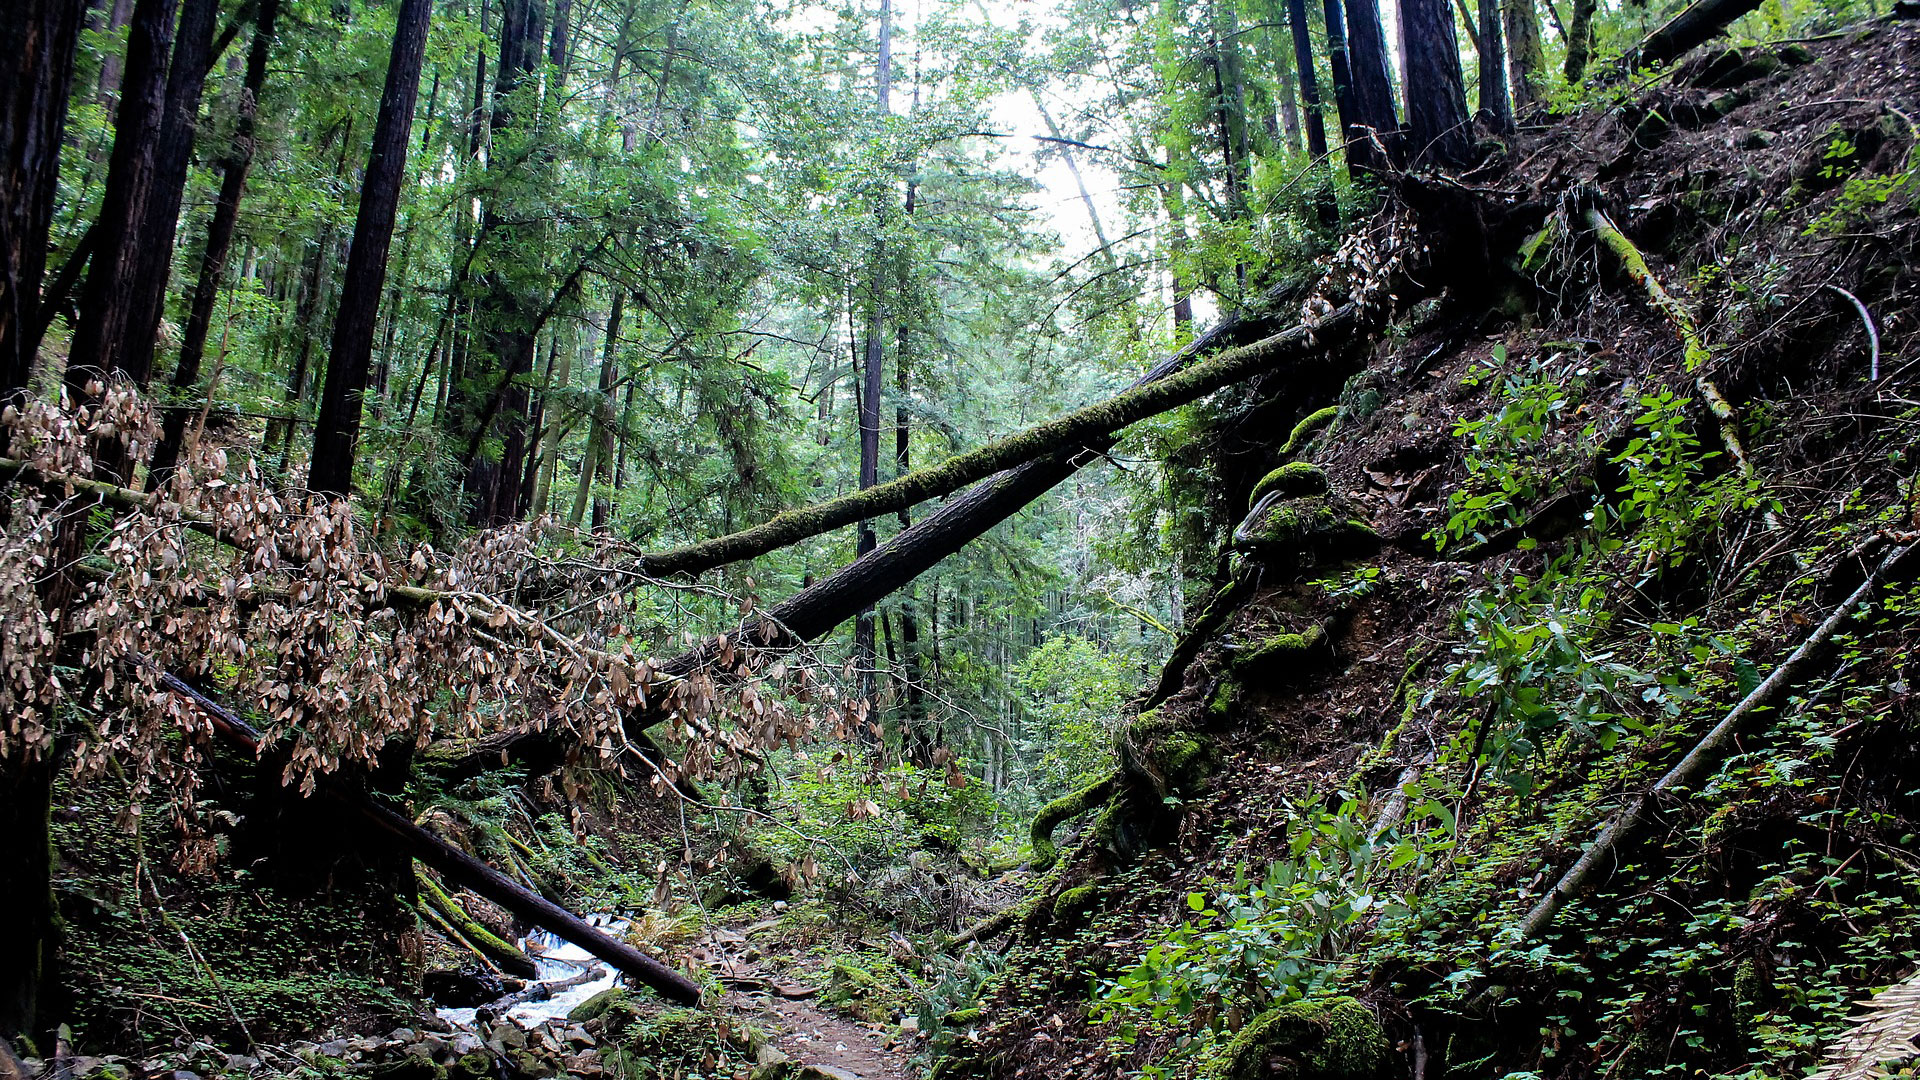 An ancient forest in California, possible home of the Bigfoot.